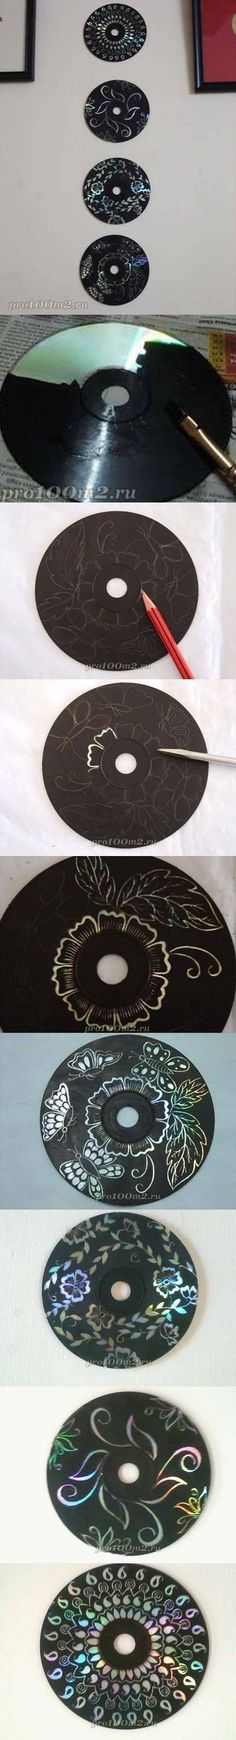 DIY Wall Decoration with CD DIY Projects.